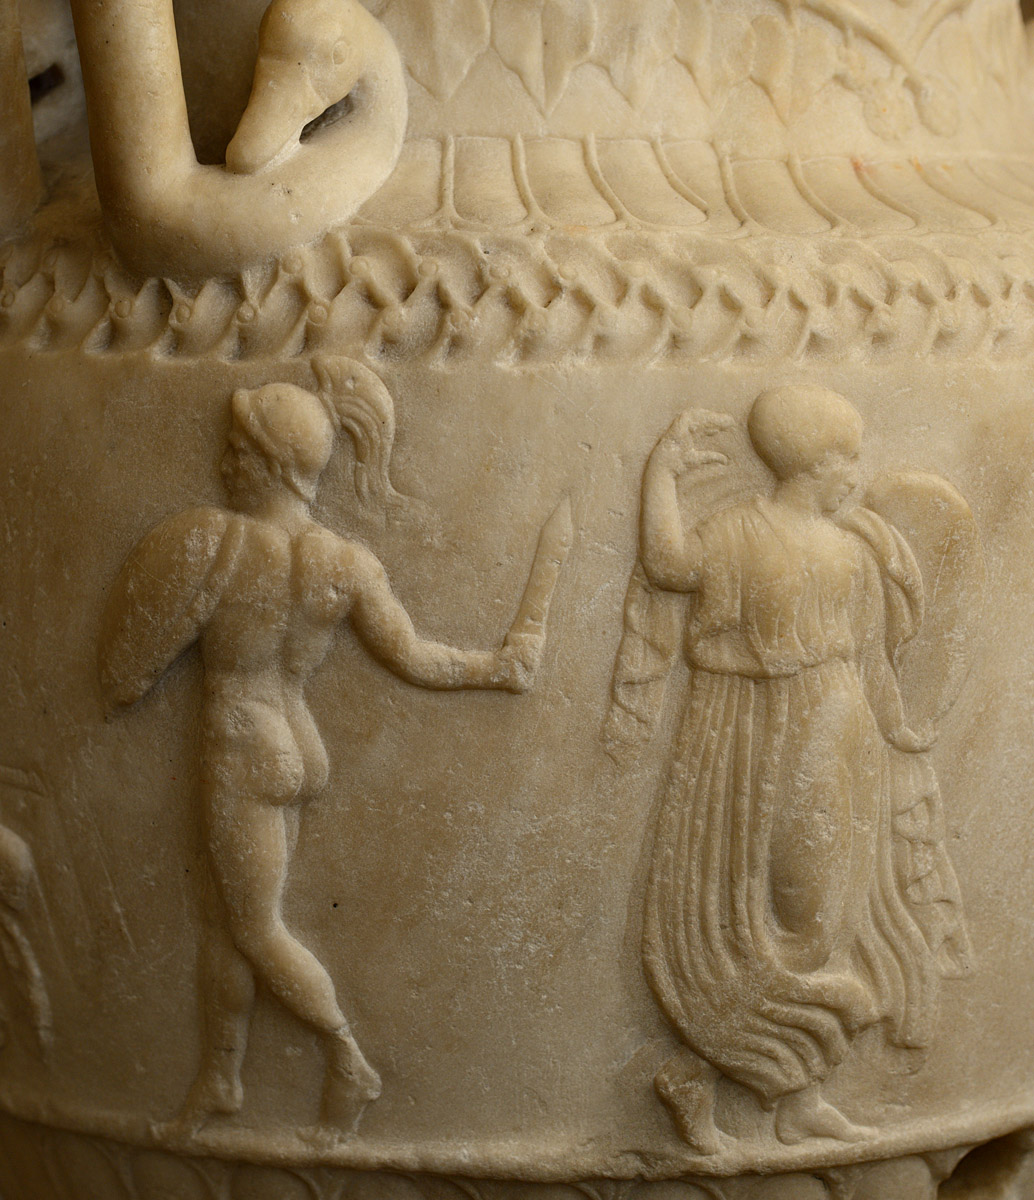 Sosibios vase (close-up). Pentelic marble. Neo-attic work ca. 50 BCE. Height of antic part 65 cm; total height 78 cm. Inv. No. MR 987 / Ma 442. Paris, Louvre Museum